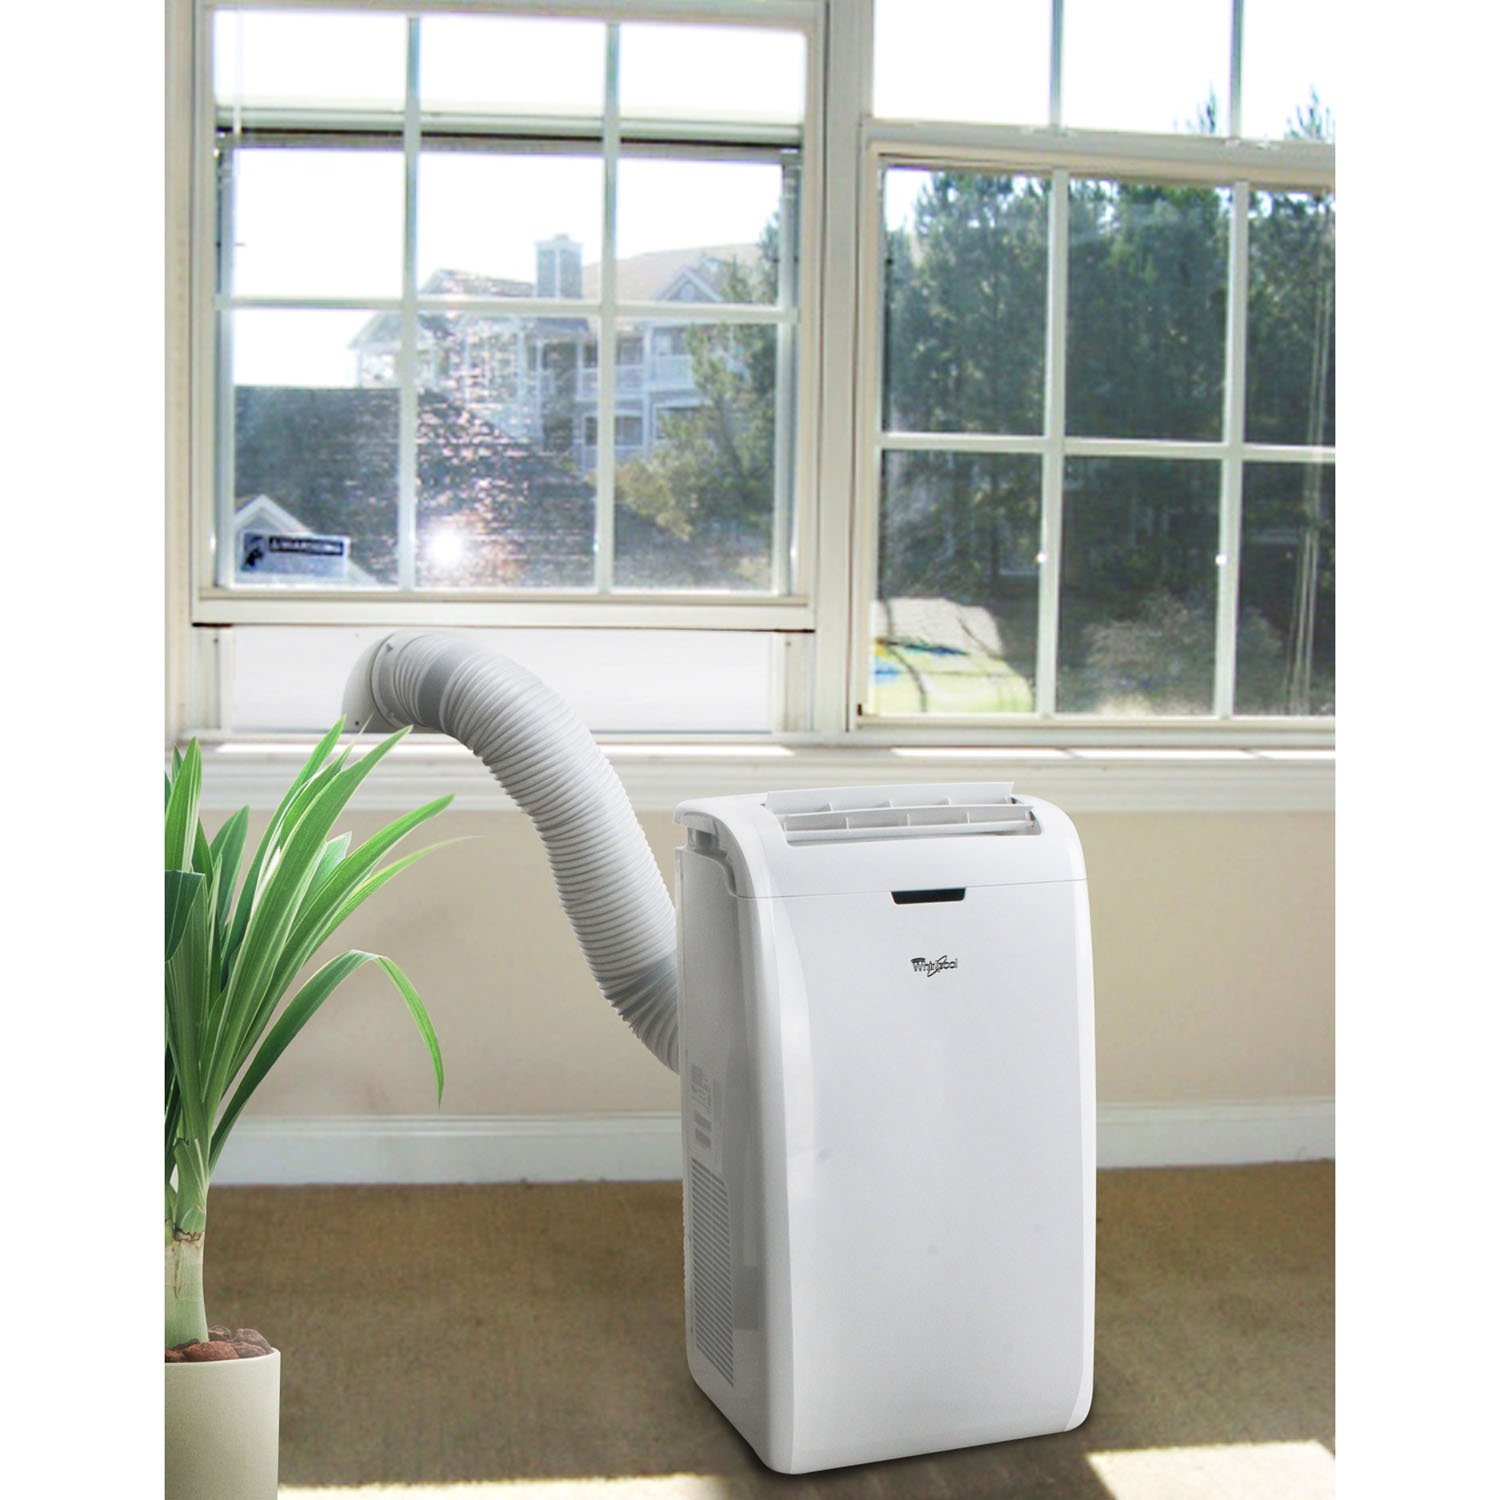 Amazon.com: Whirlpool 12,000 BTU Portable Air Conditioner with ...